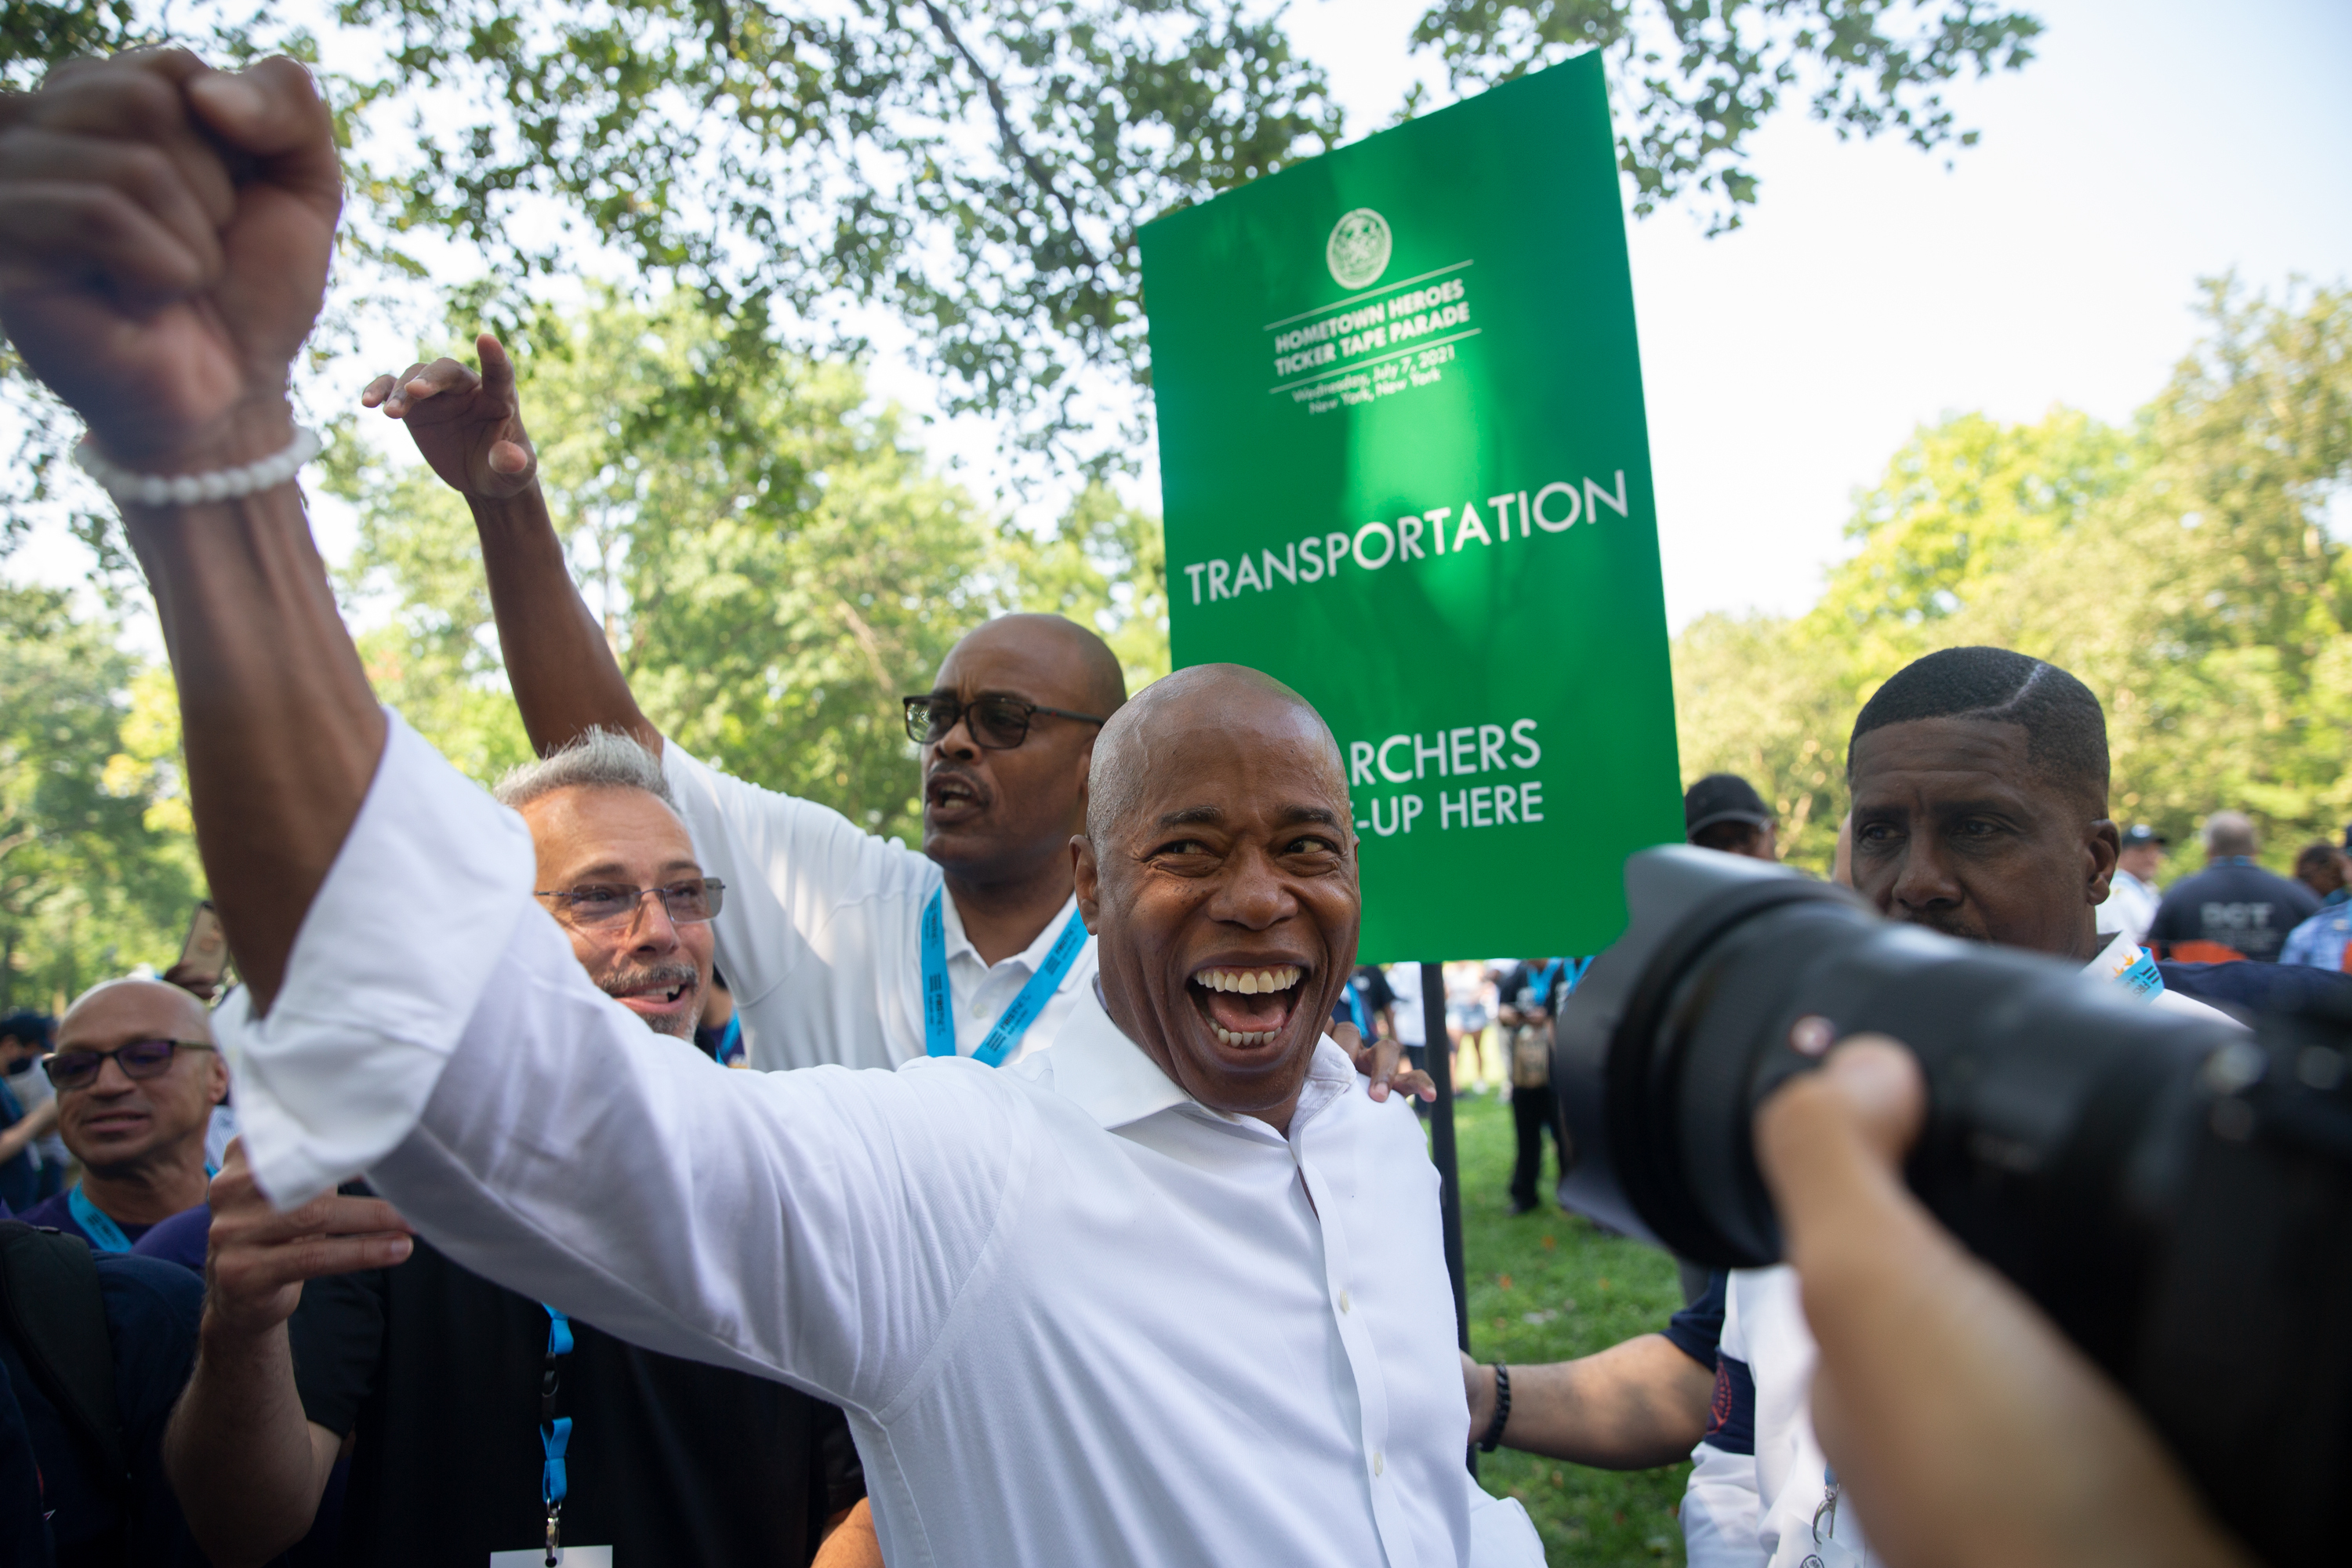 A jubilant Eric Adams greets revelers at the Hometown Heroes Parade in Lower Manhattan, July 7, 2021.